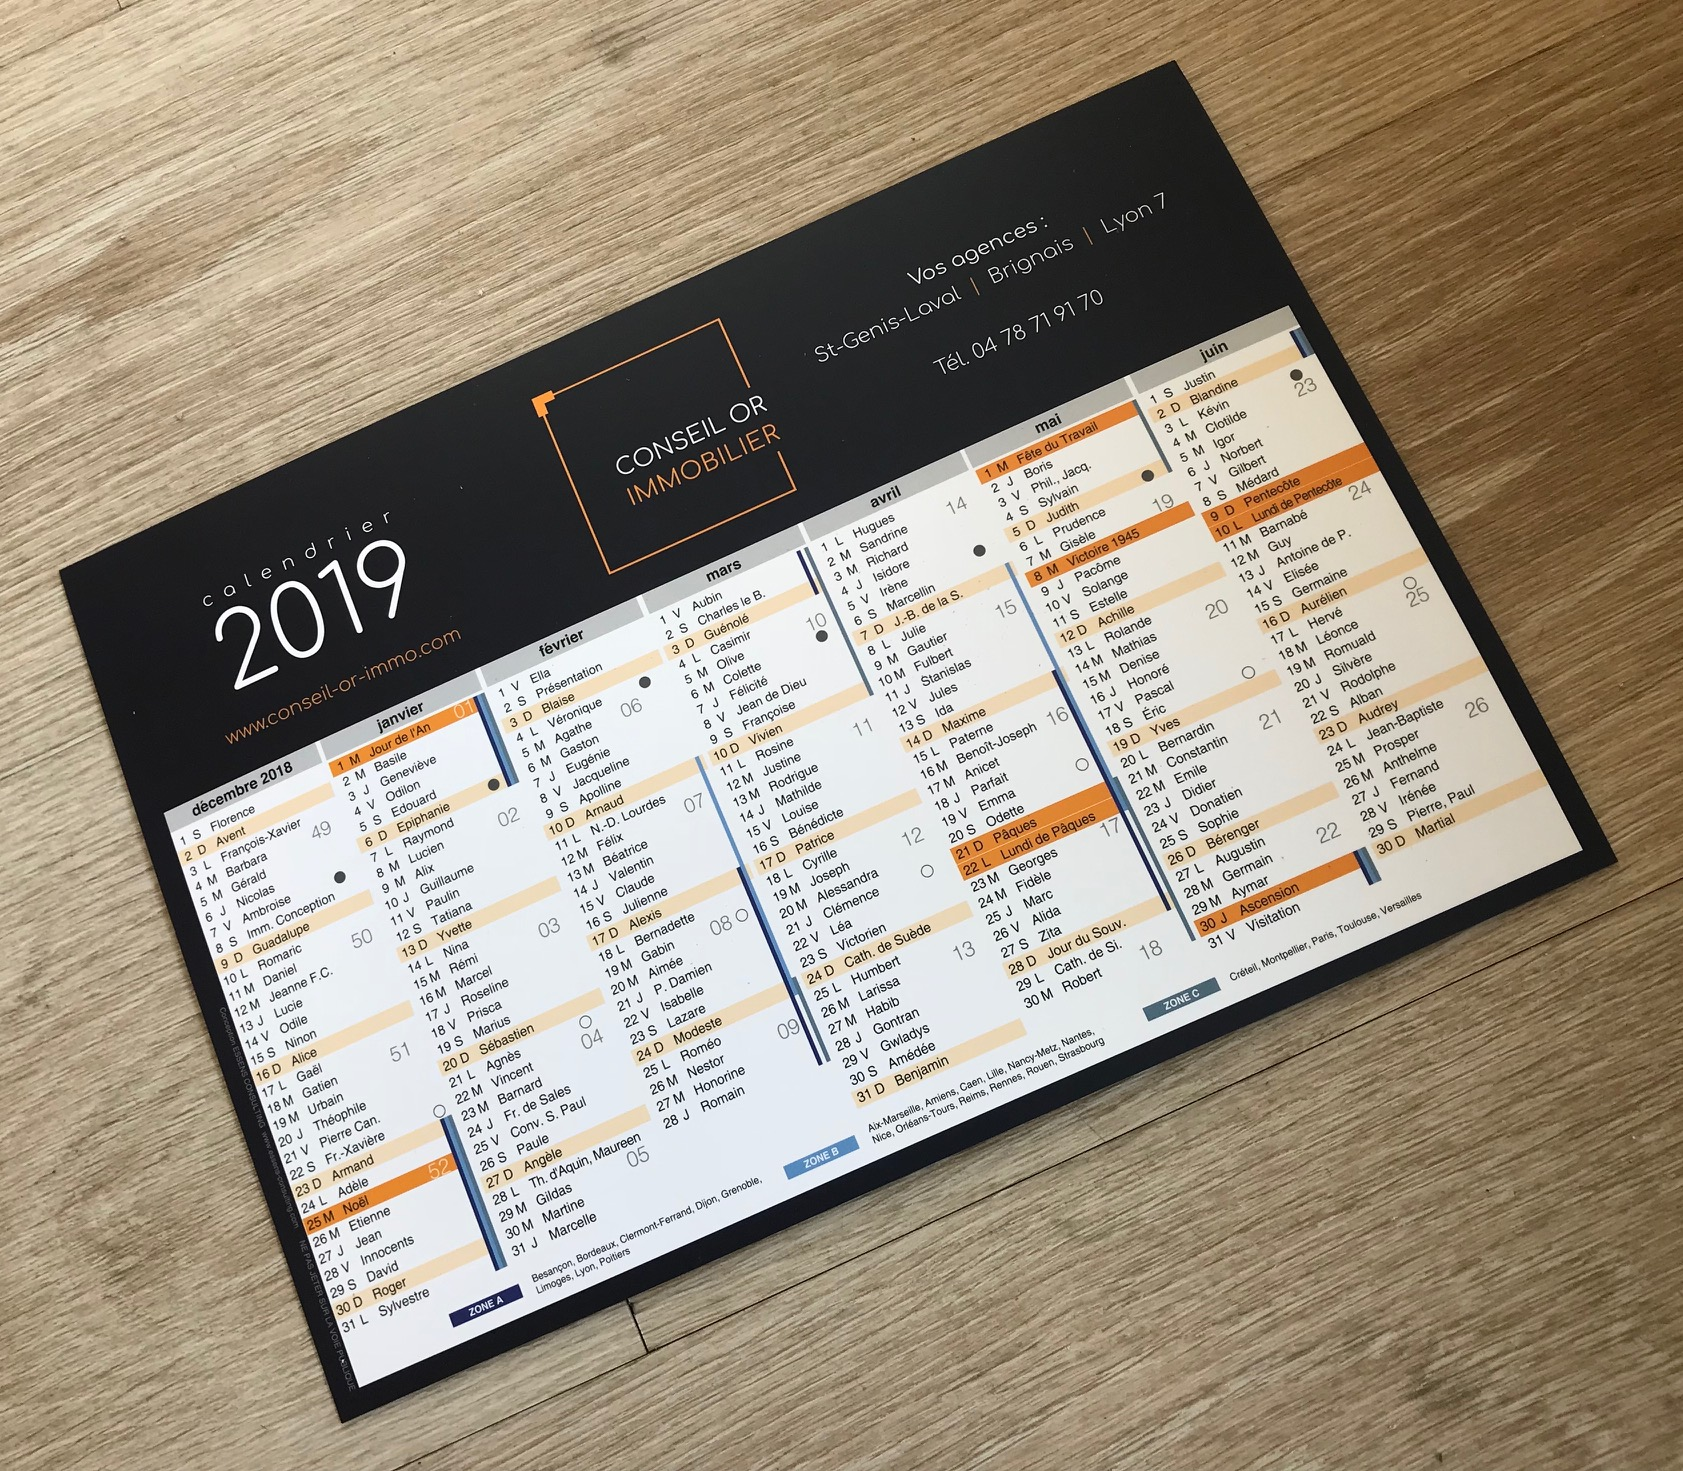 Calendrier 2019 CONSEIL OR IMMO